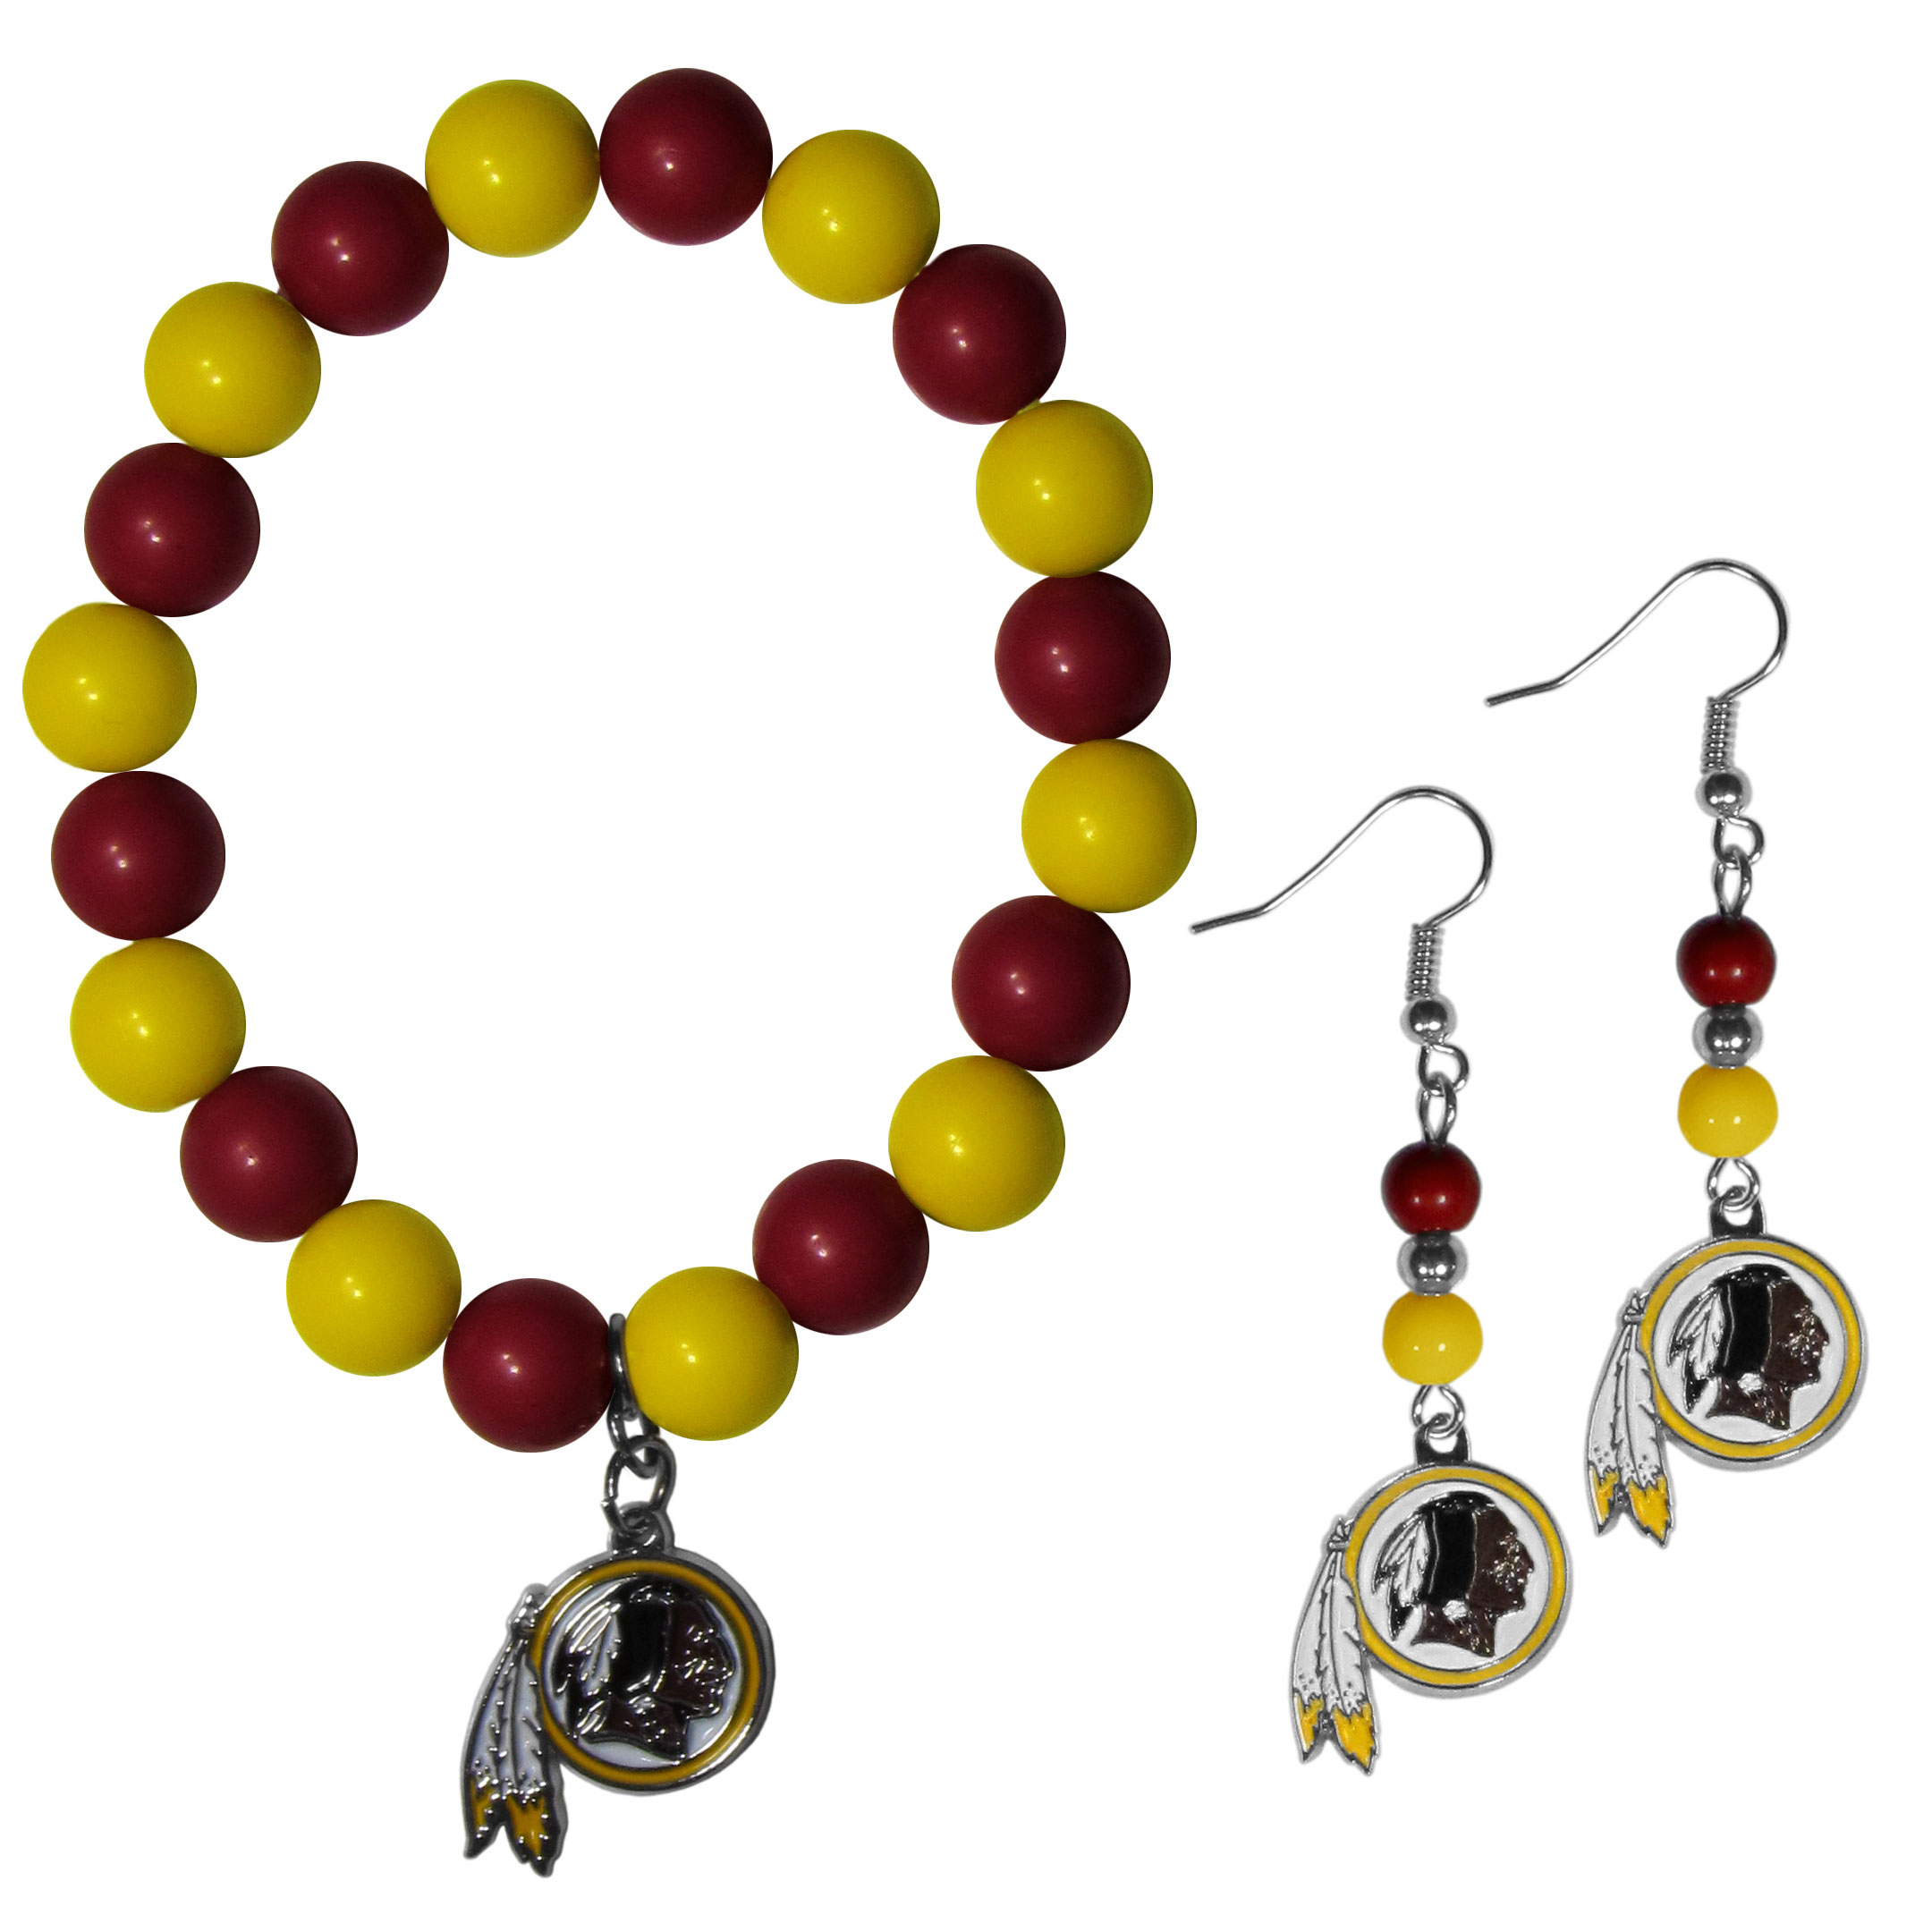 Washington Redskins Fan Bead Earrings and Bracelet Set - This fun and colorful Washington Redskins fan bead jewelry set is fun and casual with eye-catching beads in bright team colors. The fashionable dangle earrings feature a team colored beads that drop down to a carved and enameled charm. The stretch bracelet has larger matching beads that make a striking statement and have a matching team charm. These sassy yet sporty jewelry pieces make a perfect gift for any female fan. Spice up your game-day outfit with these fun colorful earrings and bracelet that are also cute enough for any day.